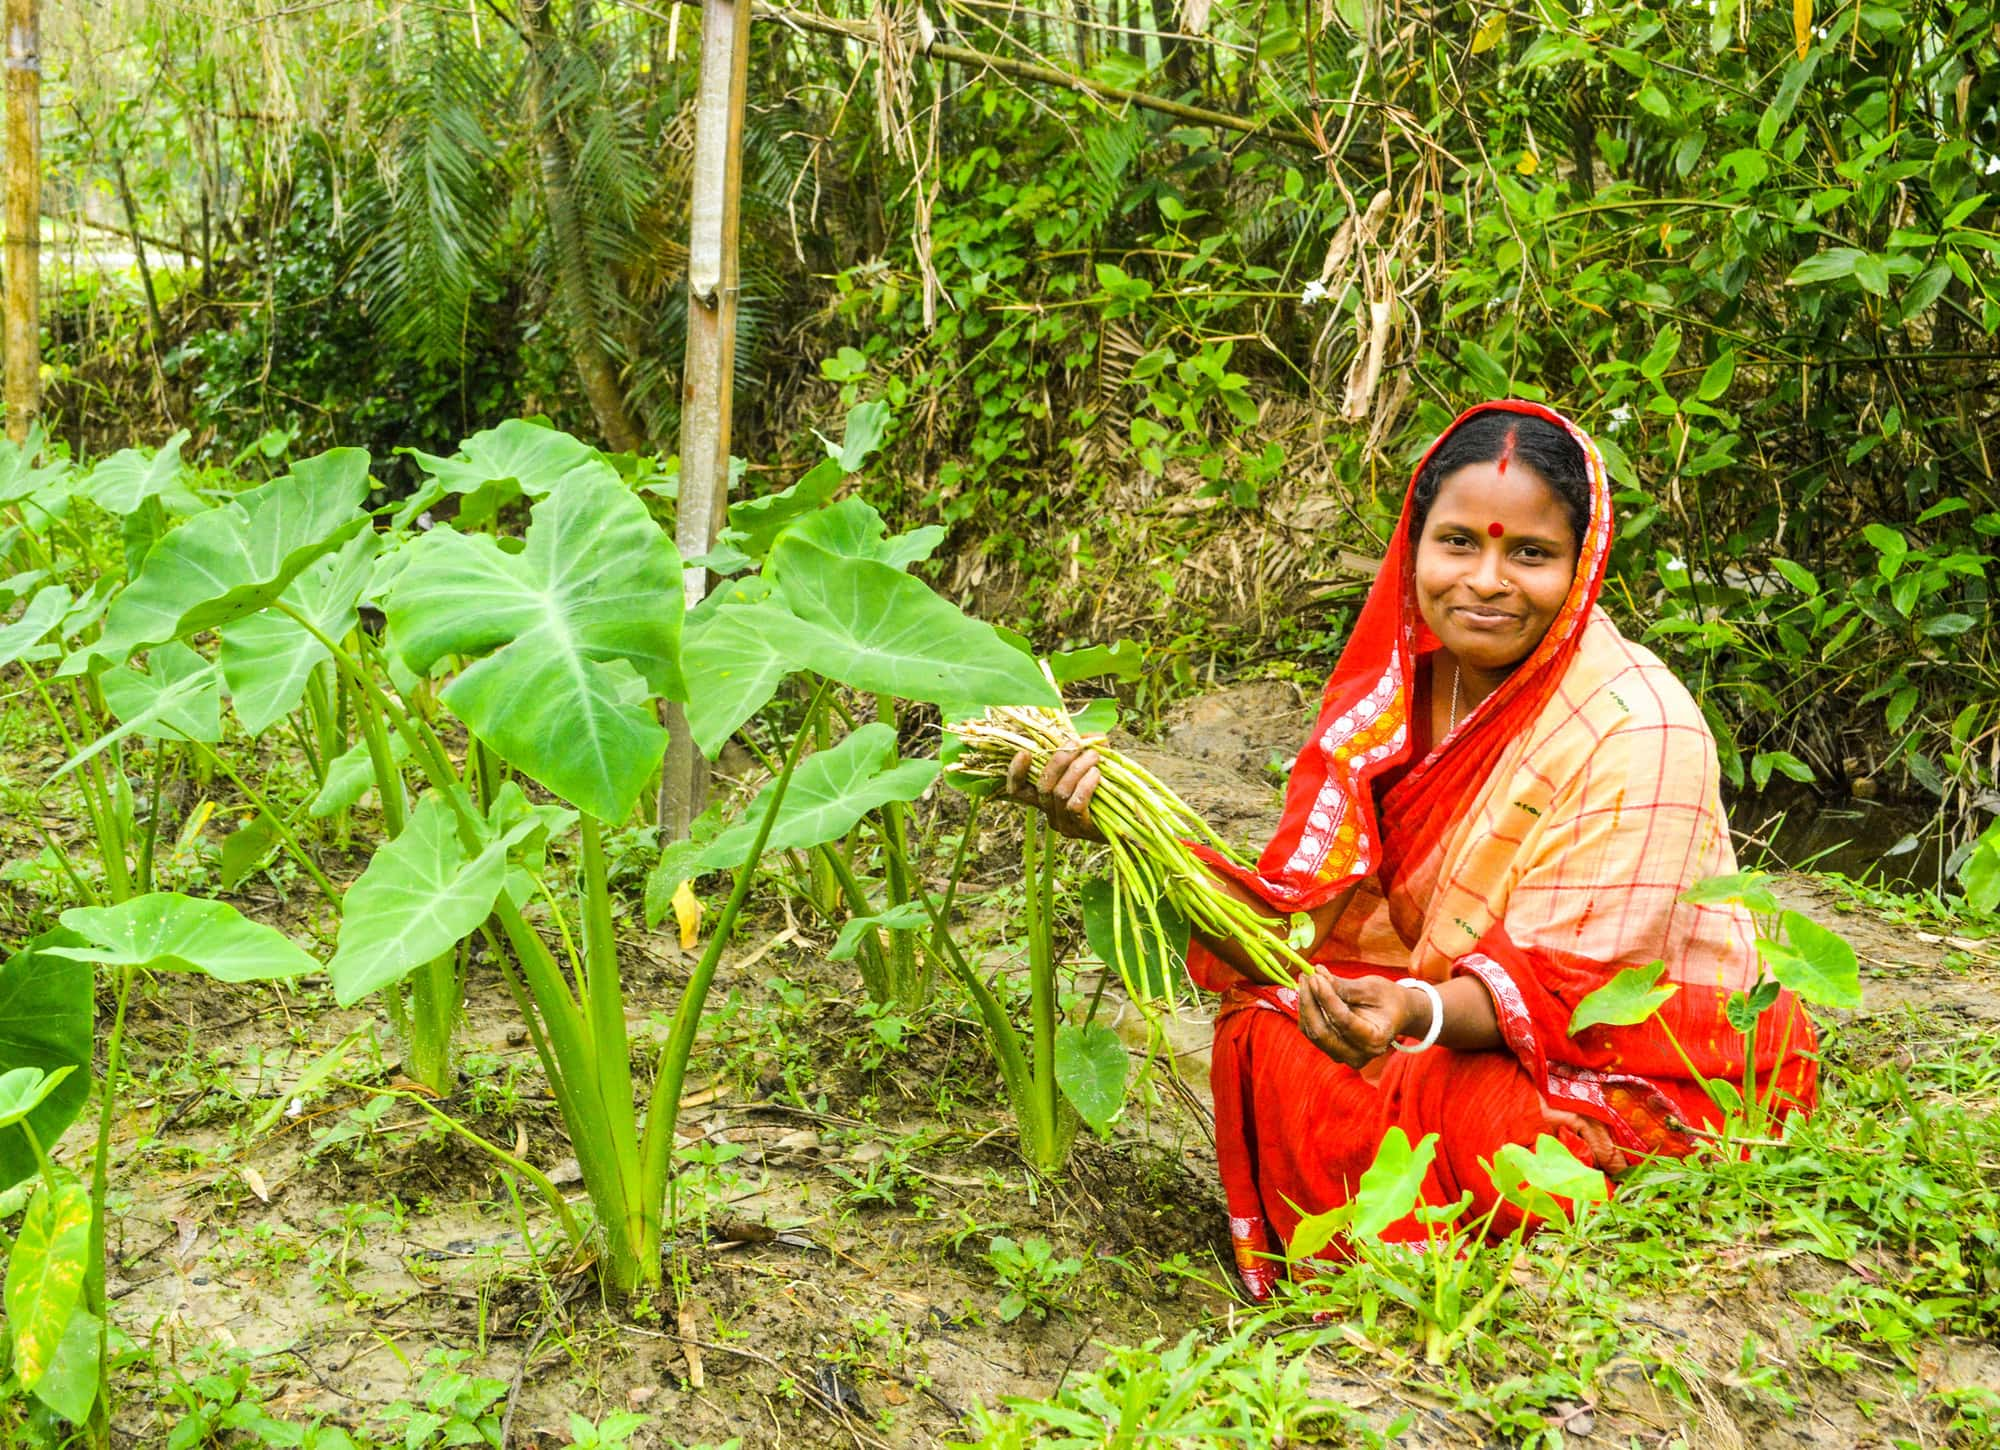 Harvesting veg in Bangladesh - WorldFish - M.Rahman